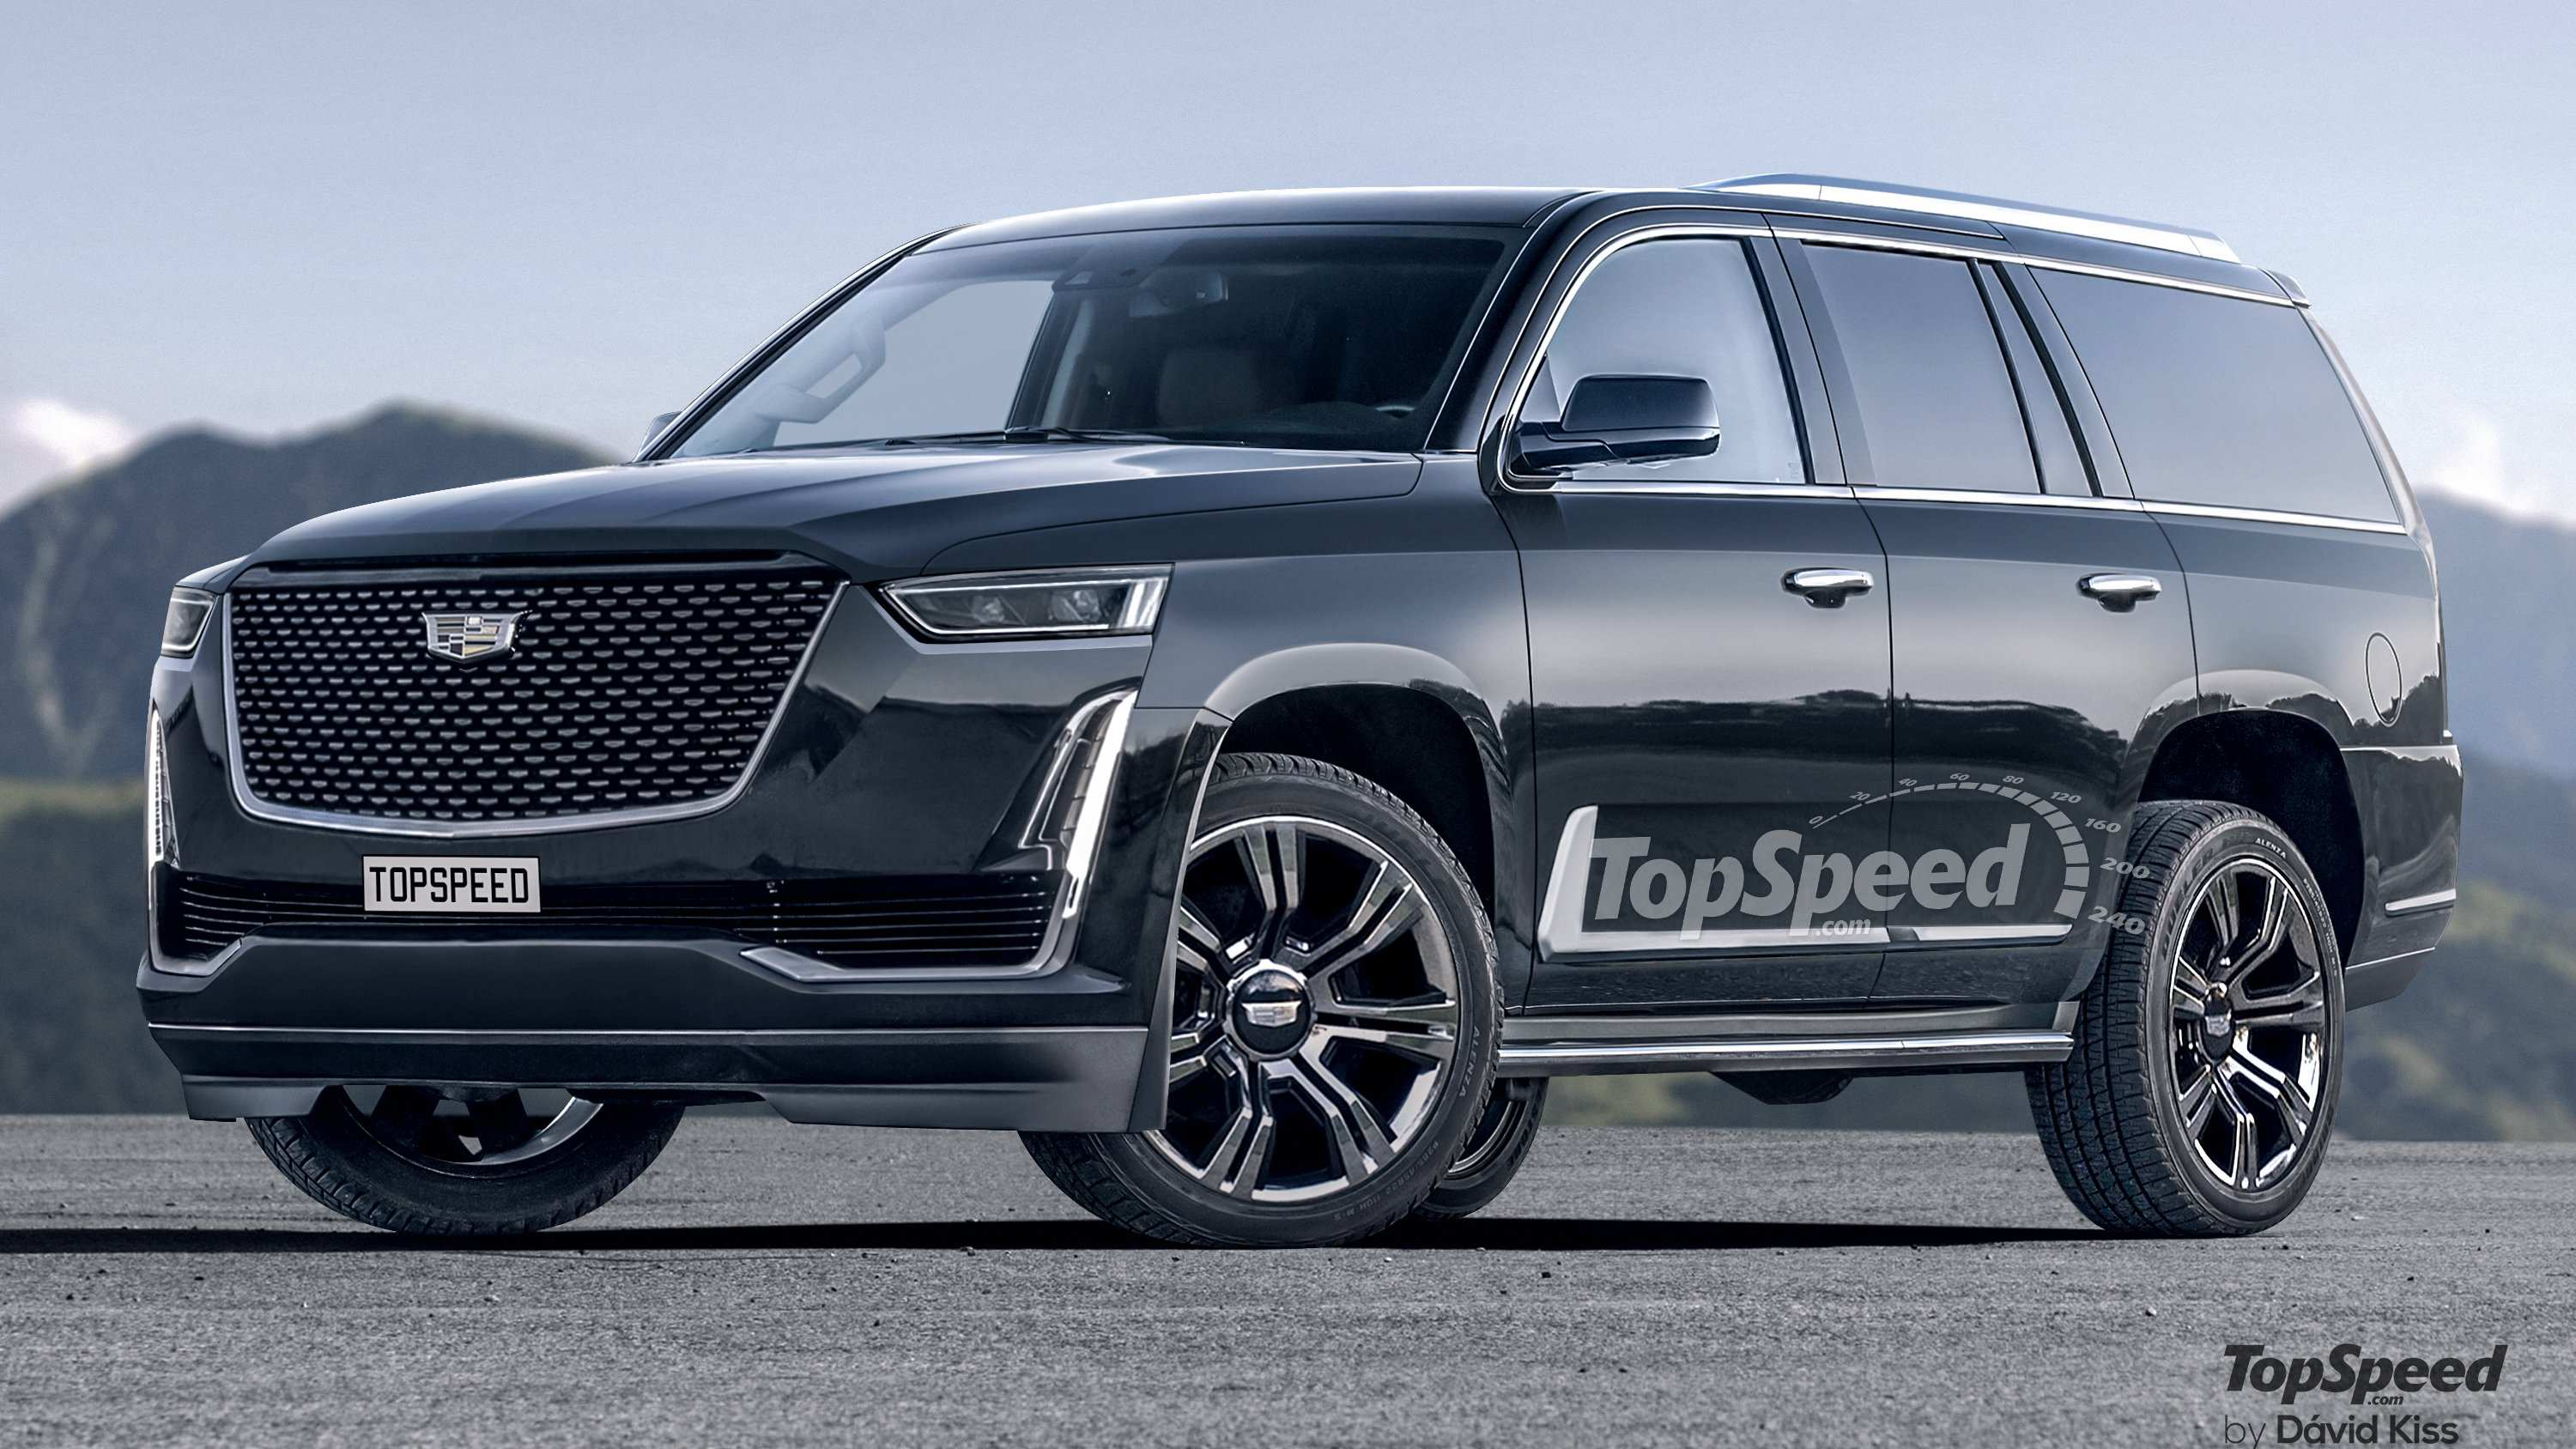 43 New 2020 Cadillac Build And Price Spy Shoot